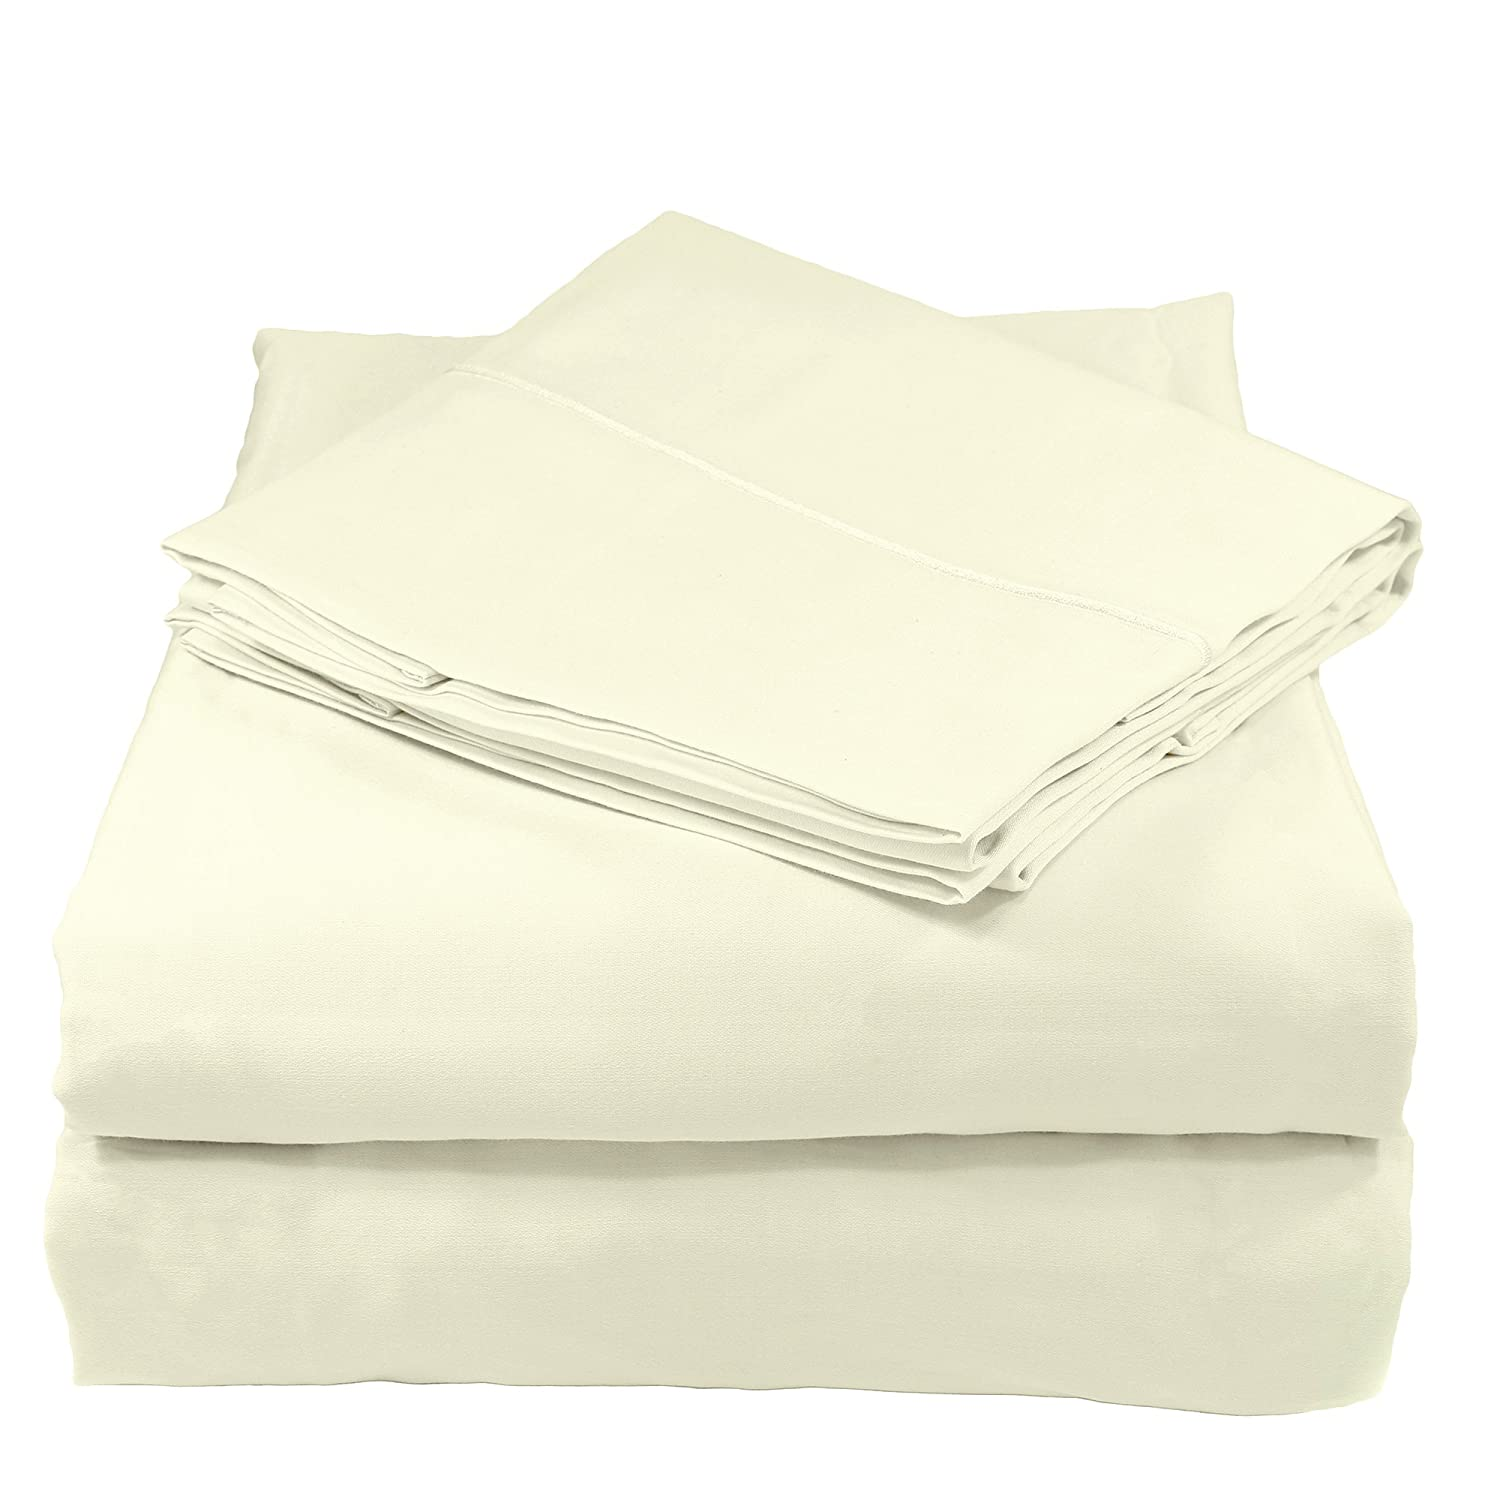 Ivory Full Whisper Organics 300 Thread Count Soft Cotton Twin Bed Sheet Set (GOTS Certified), White